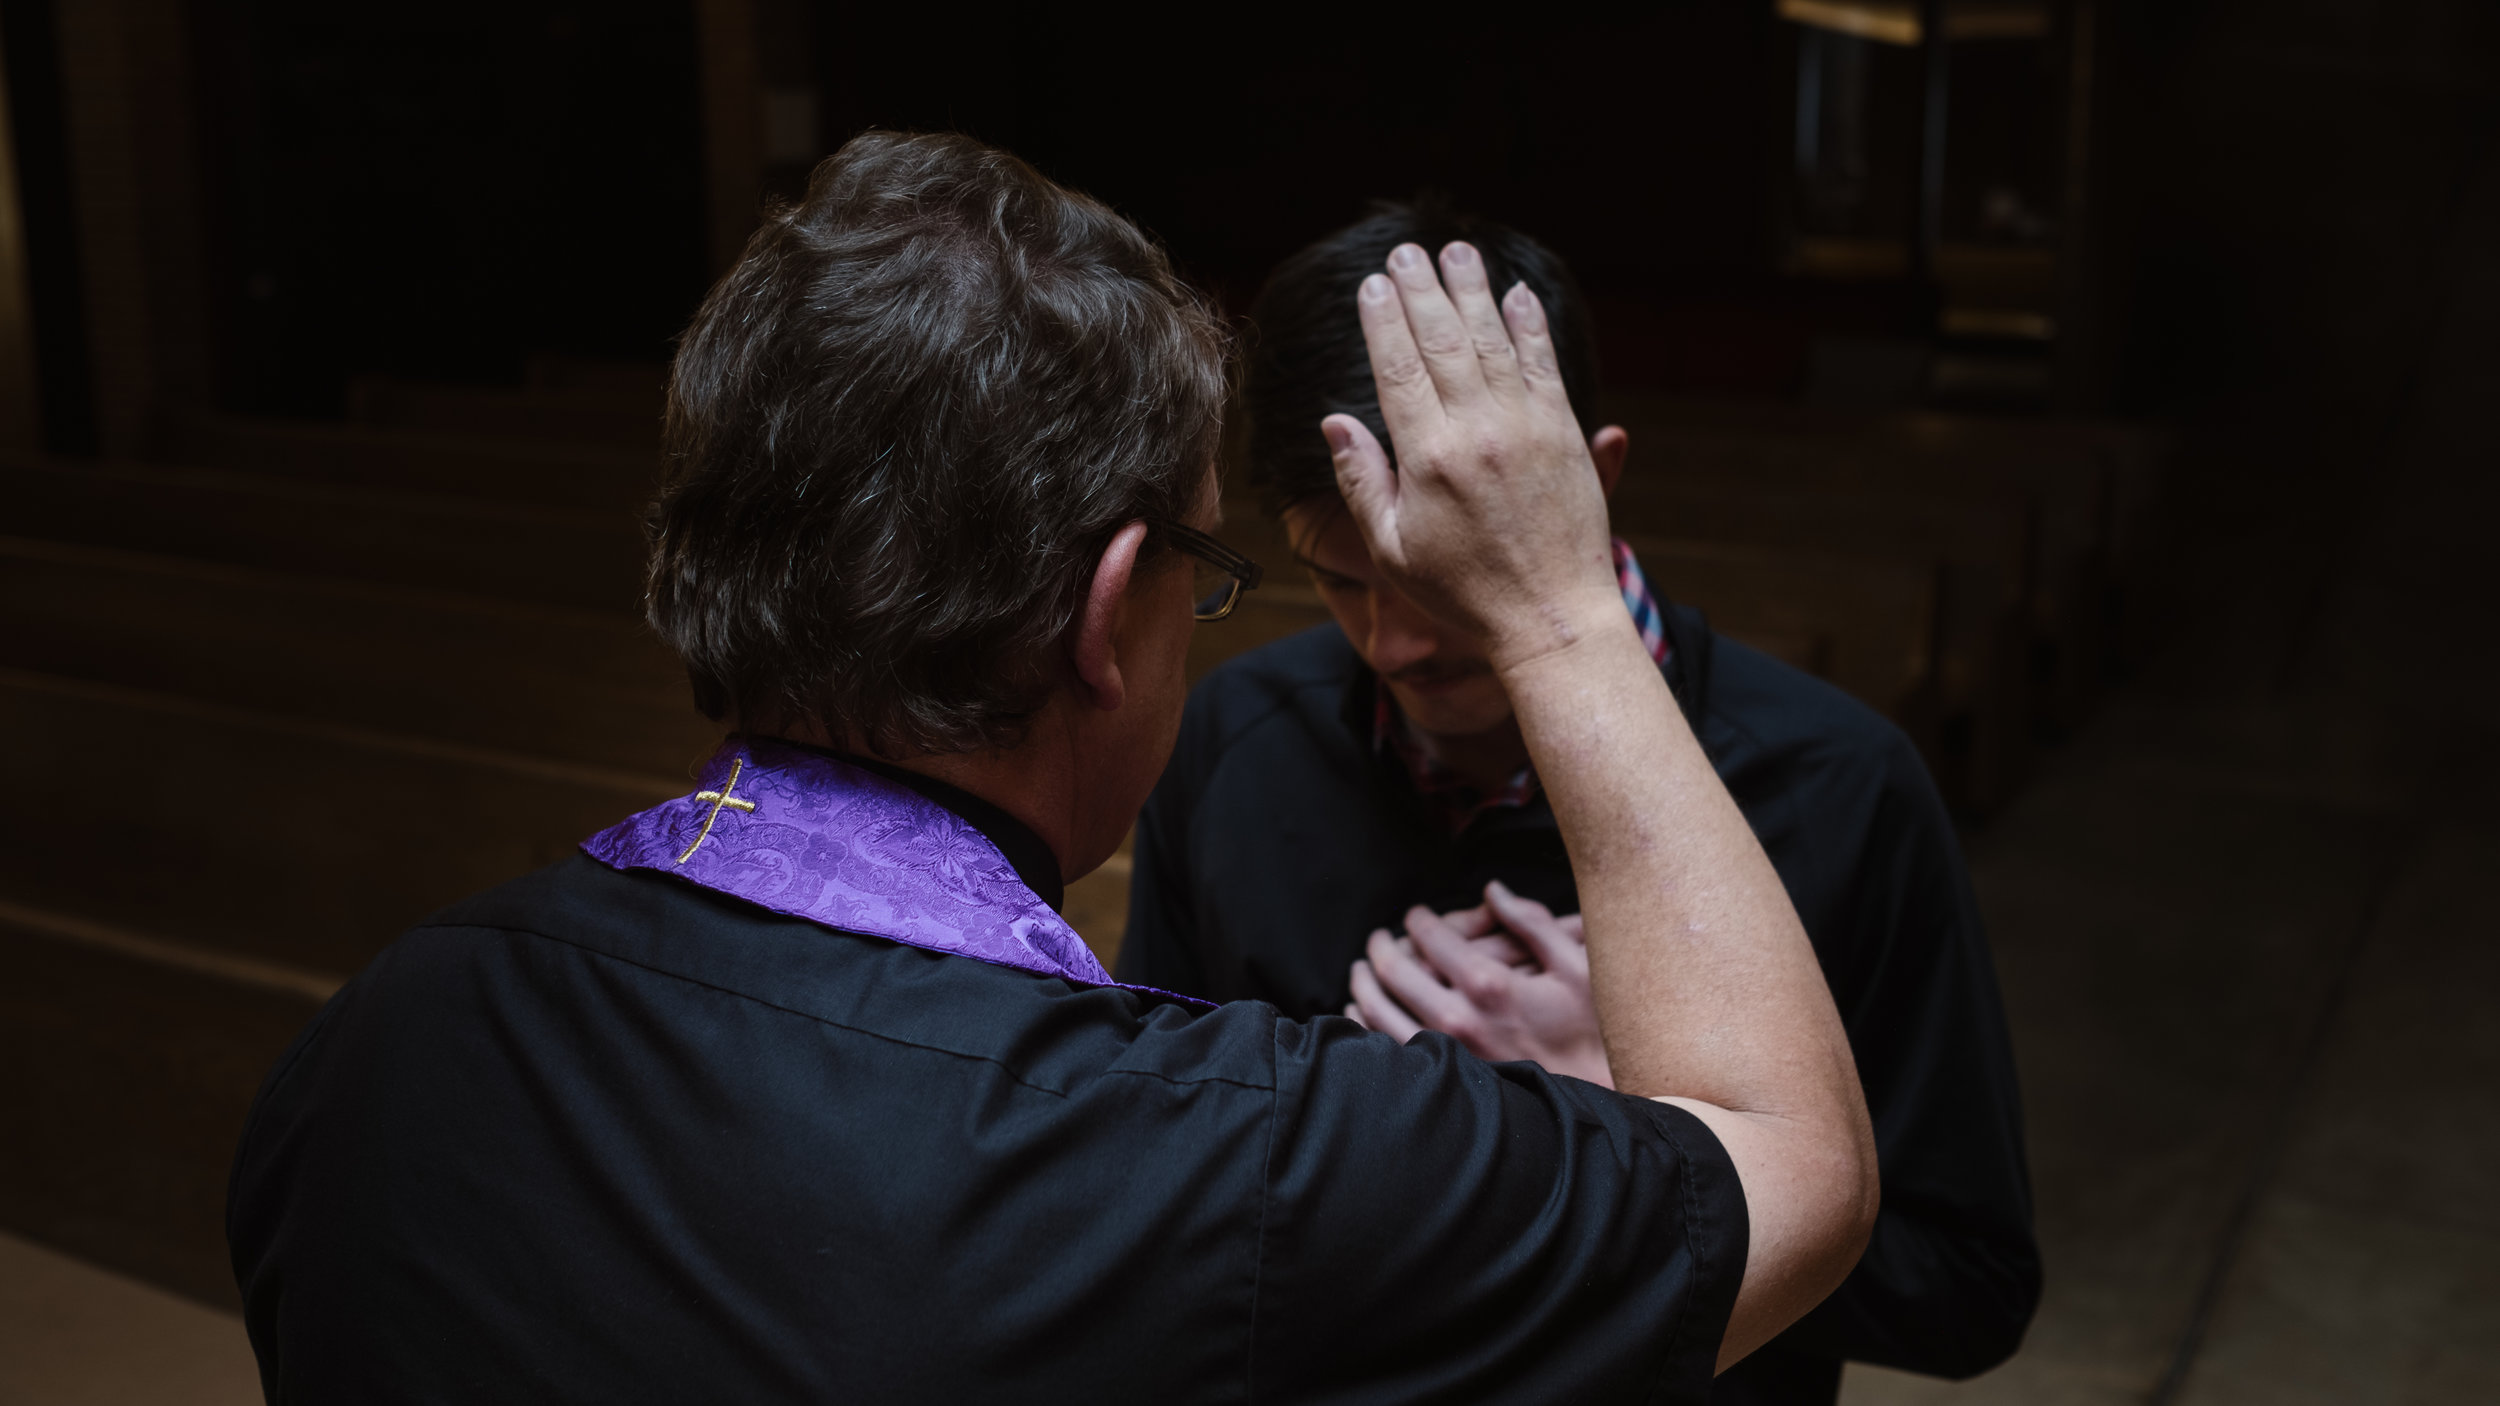 Confession - Saturday 3:00-3:45pm – St.Elizabeth & St. Mary of the Hills Wednesday 6:00-7:00pm – St. Elizabeth